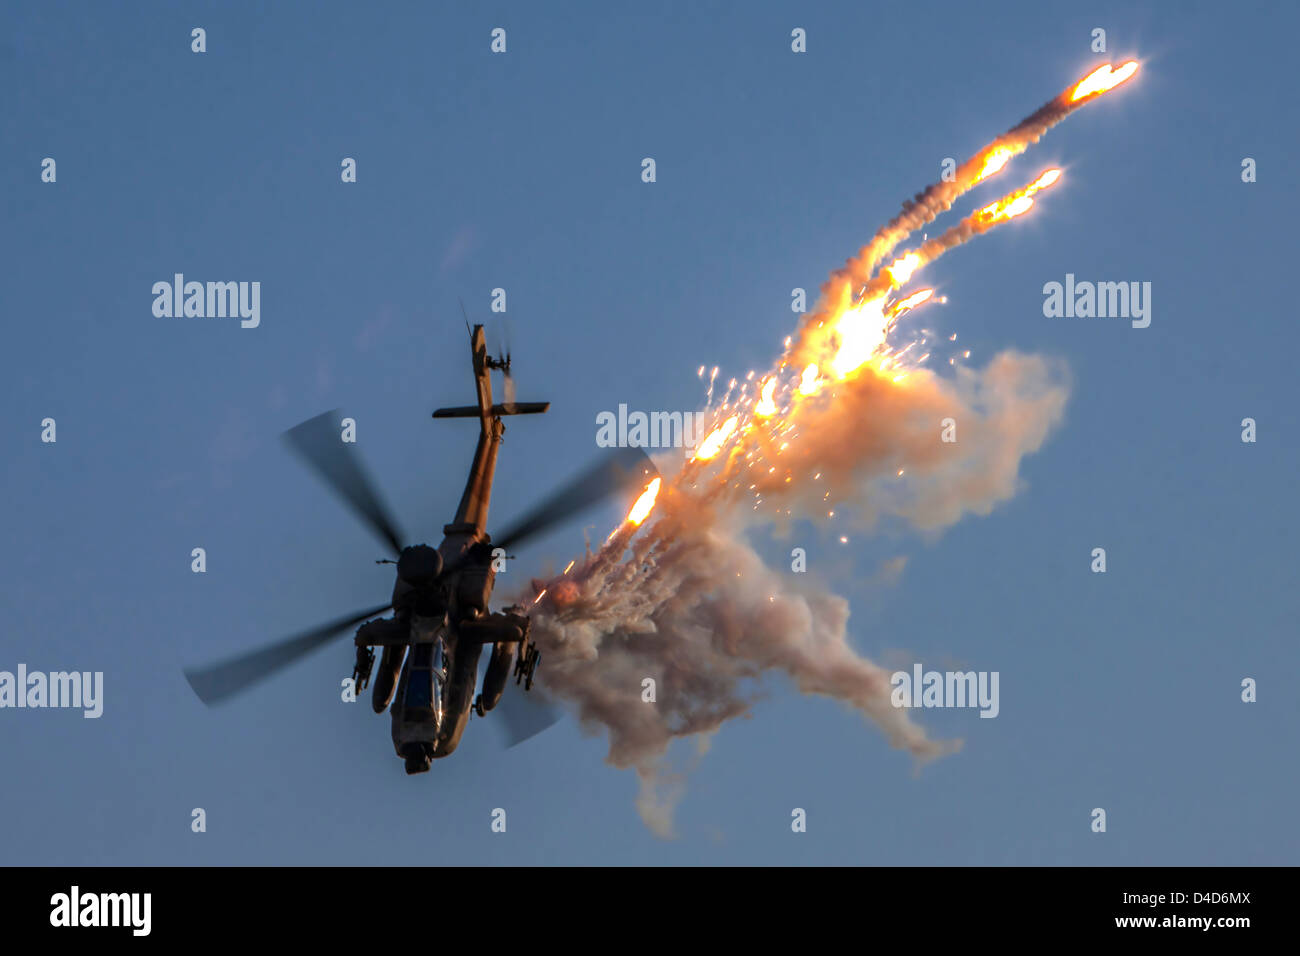 Israeli Air force Bell AH-1F Cobra helicopterEmitting anti-missile flares - Stock Image